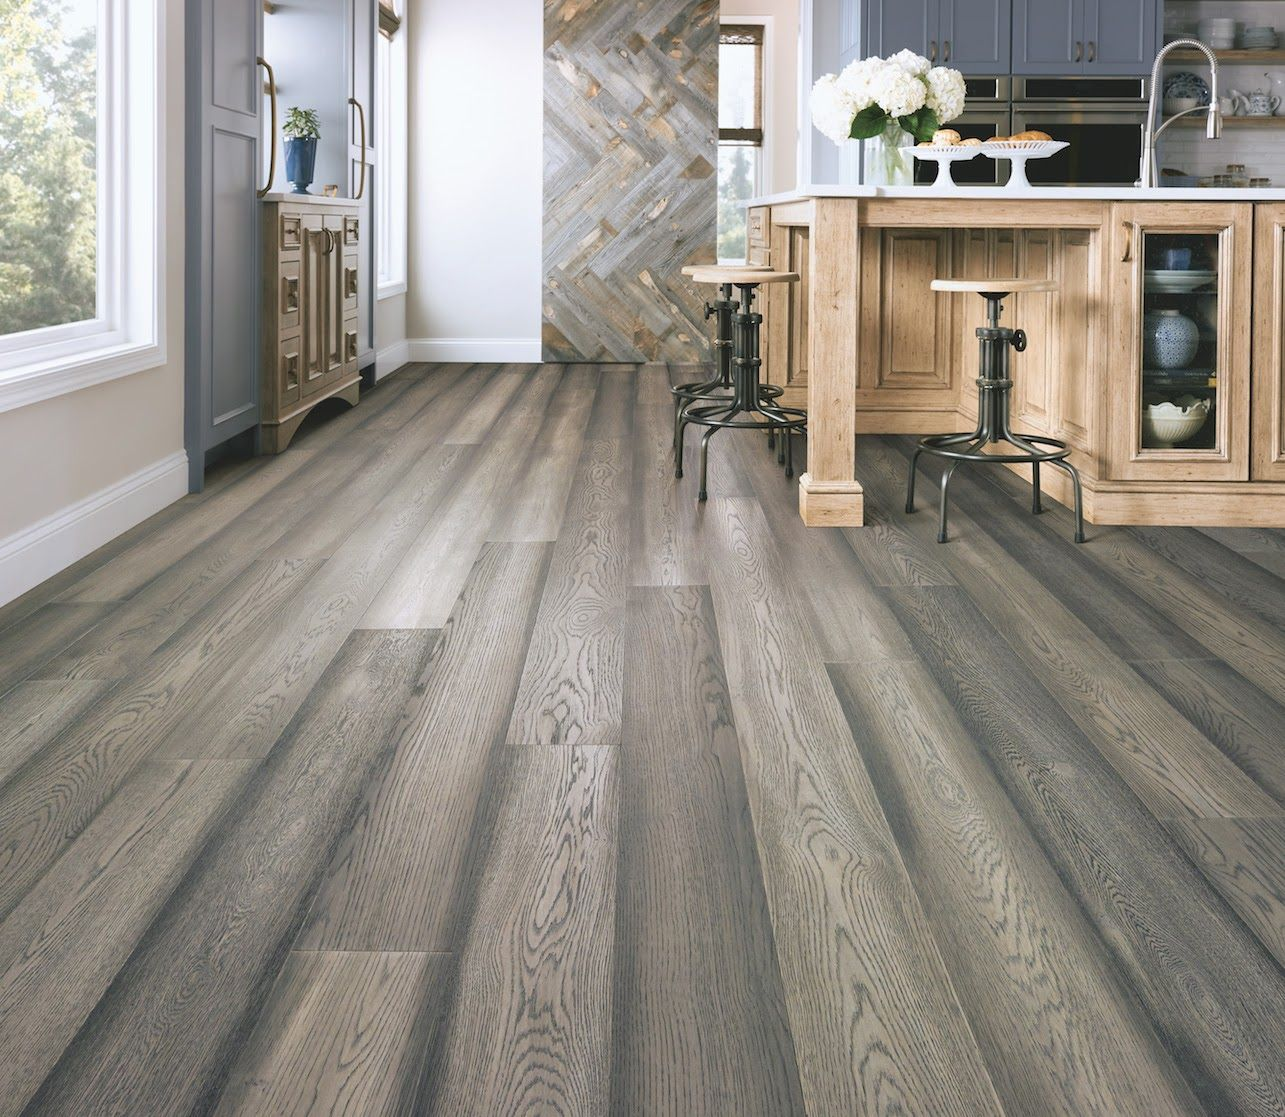 Love The Luxe Look Of Hardwood Floors In A Kitchen But Fear It Won T Stand Up To The High Foot Traffic And Multipl In 2020 Waterproof Hardwood Wooden Flooring Hardwood